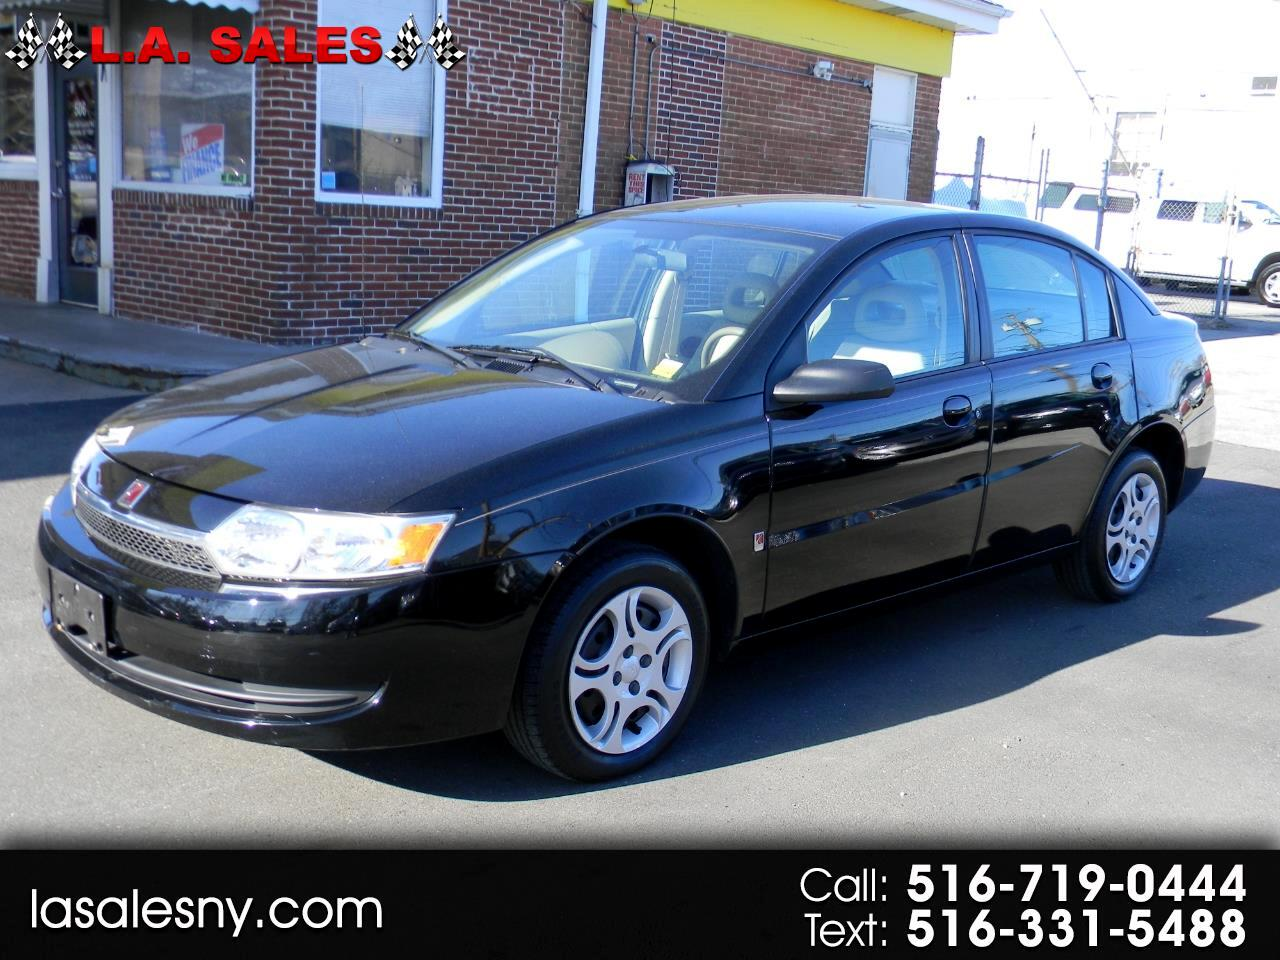 Saturn ION ION 2 4dr Sdn Auto 2004